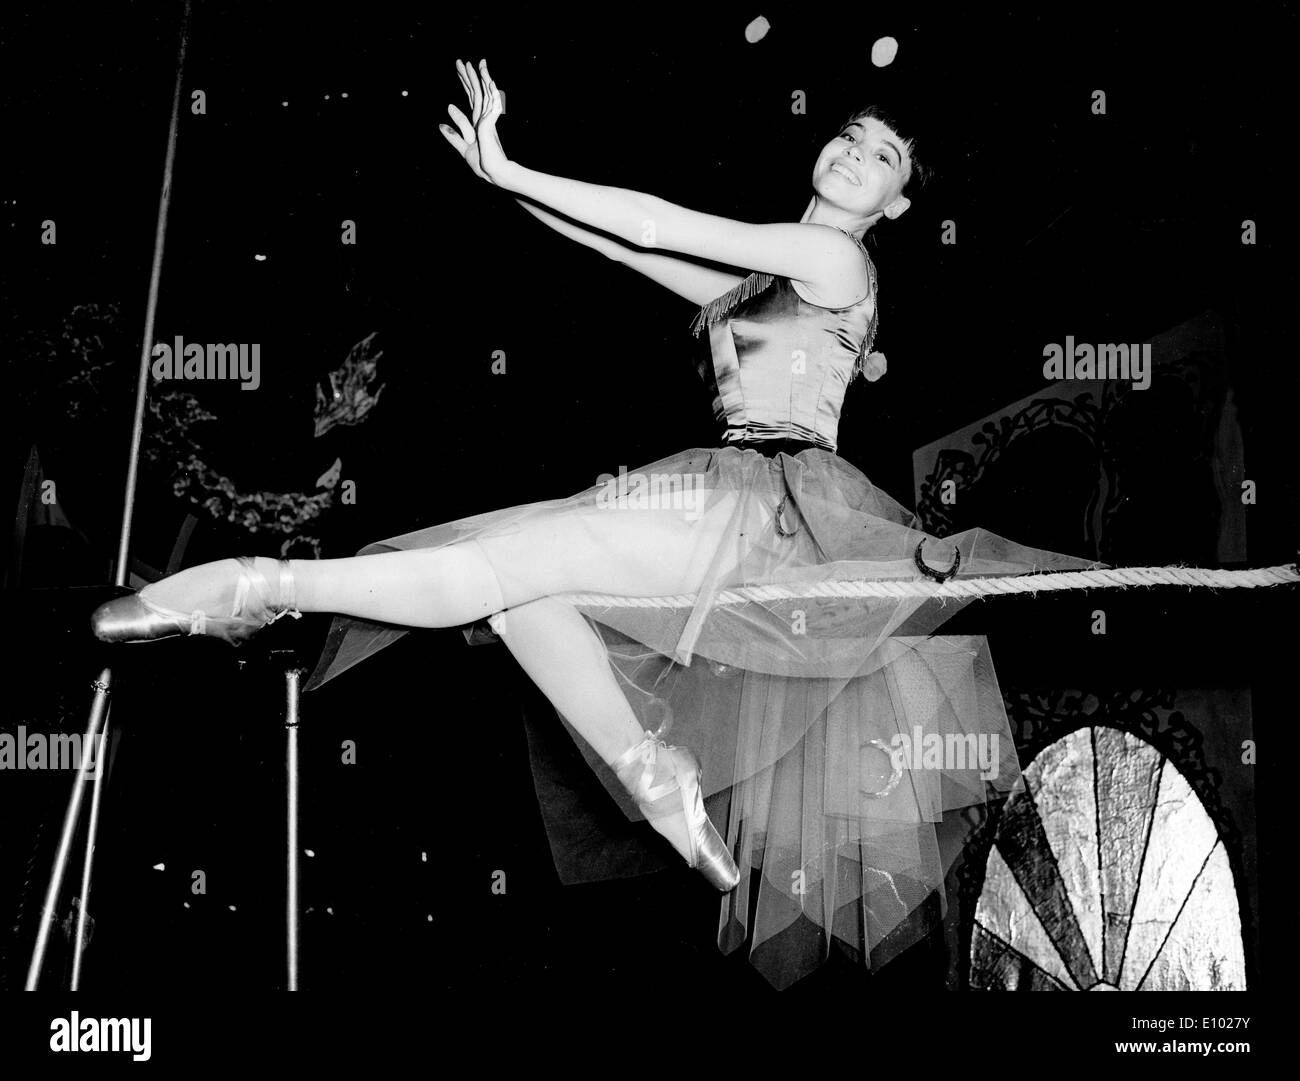 LESLIE CARON French film actress and dancer. - Stock Image